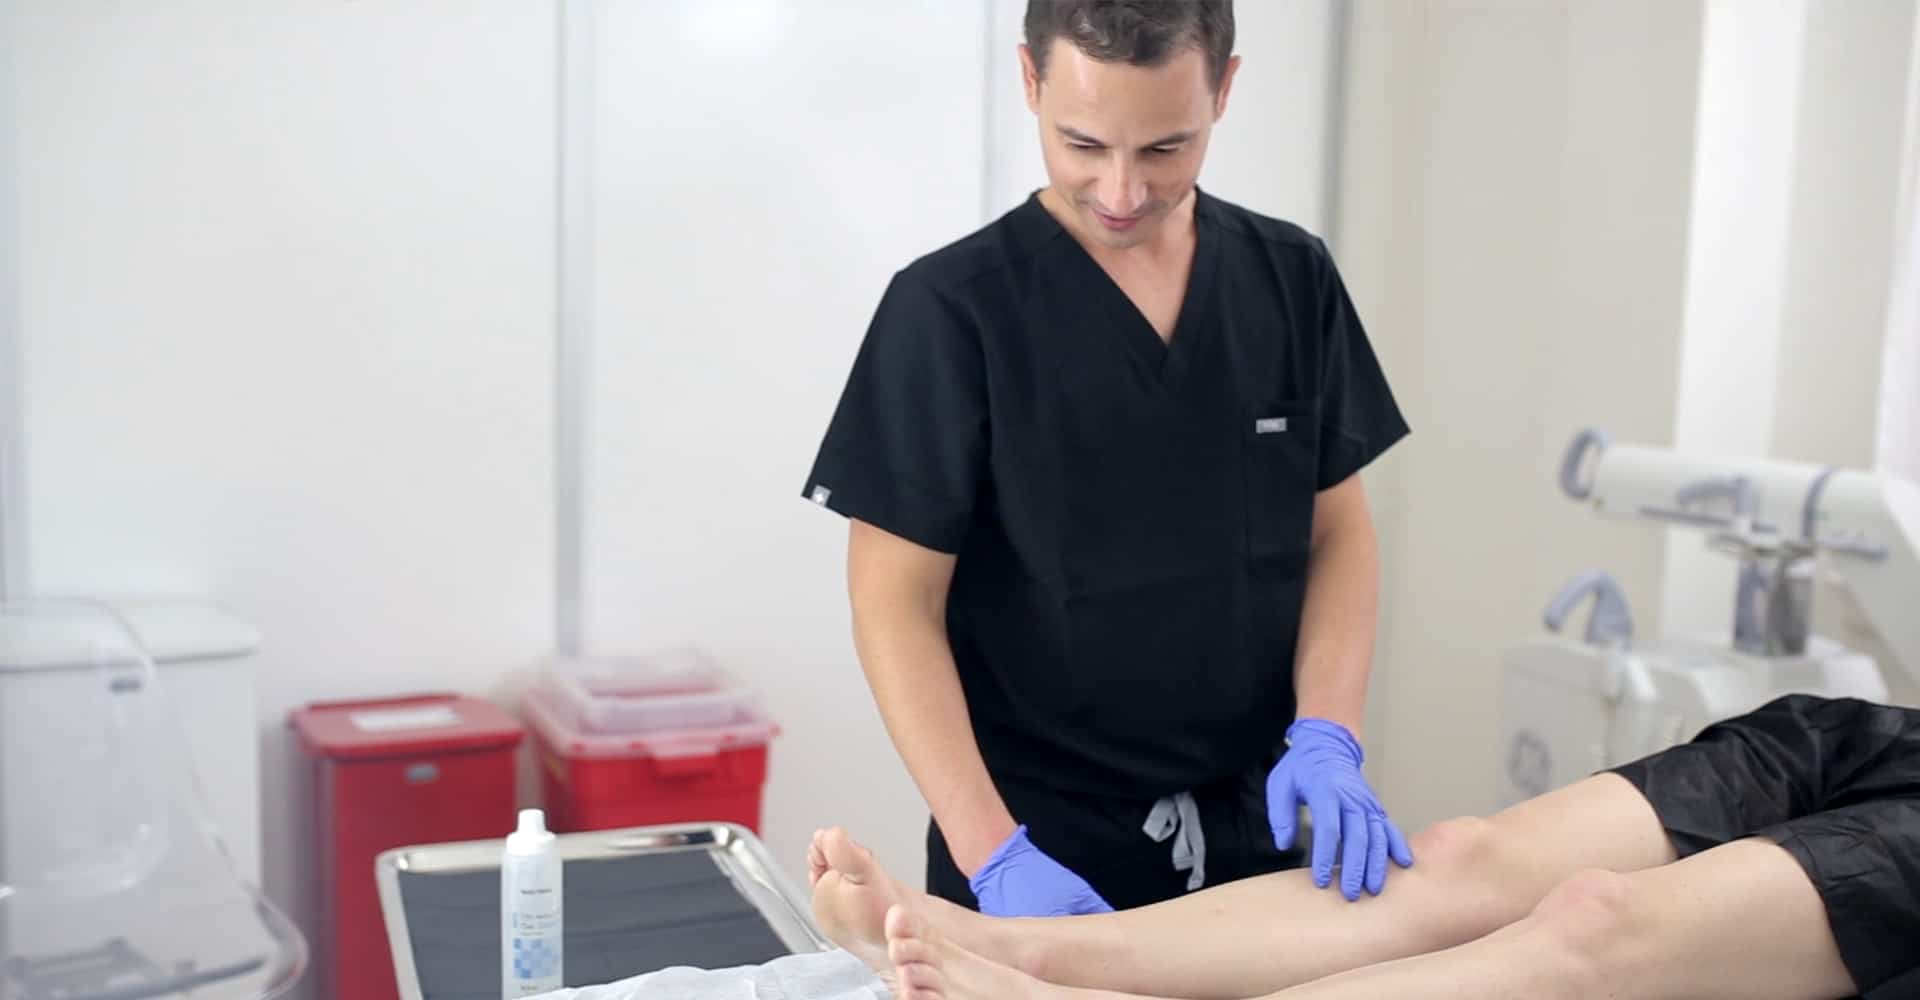 Vein Treatment Clinic is a highly-reputable vein clinic in TX. In this article, our vein doctor answers some frequently asked questions about varicose veins and spider veins.